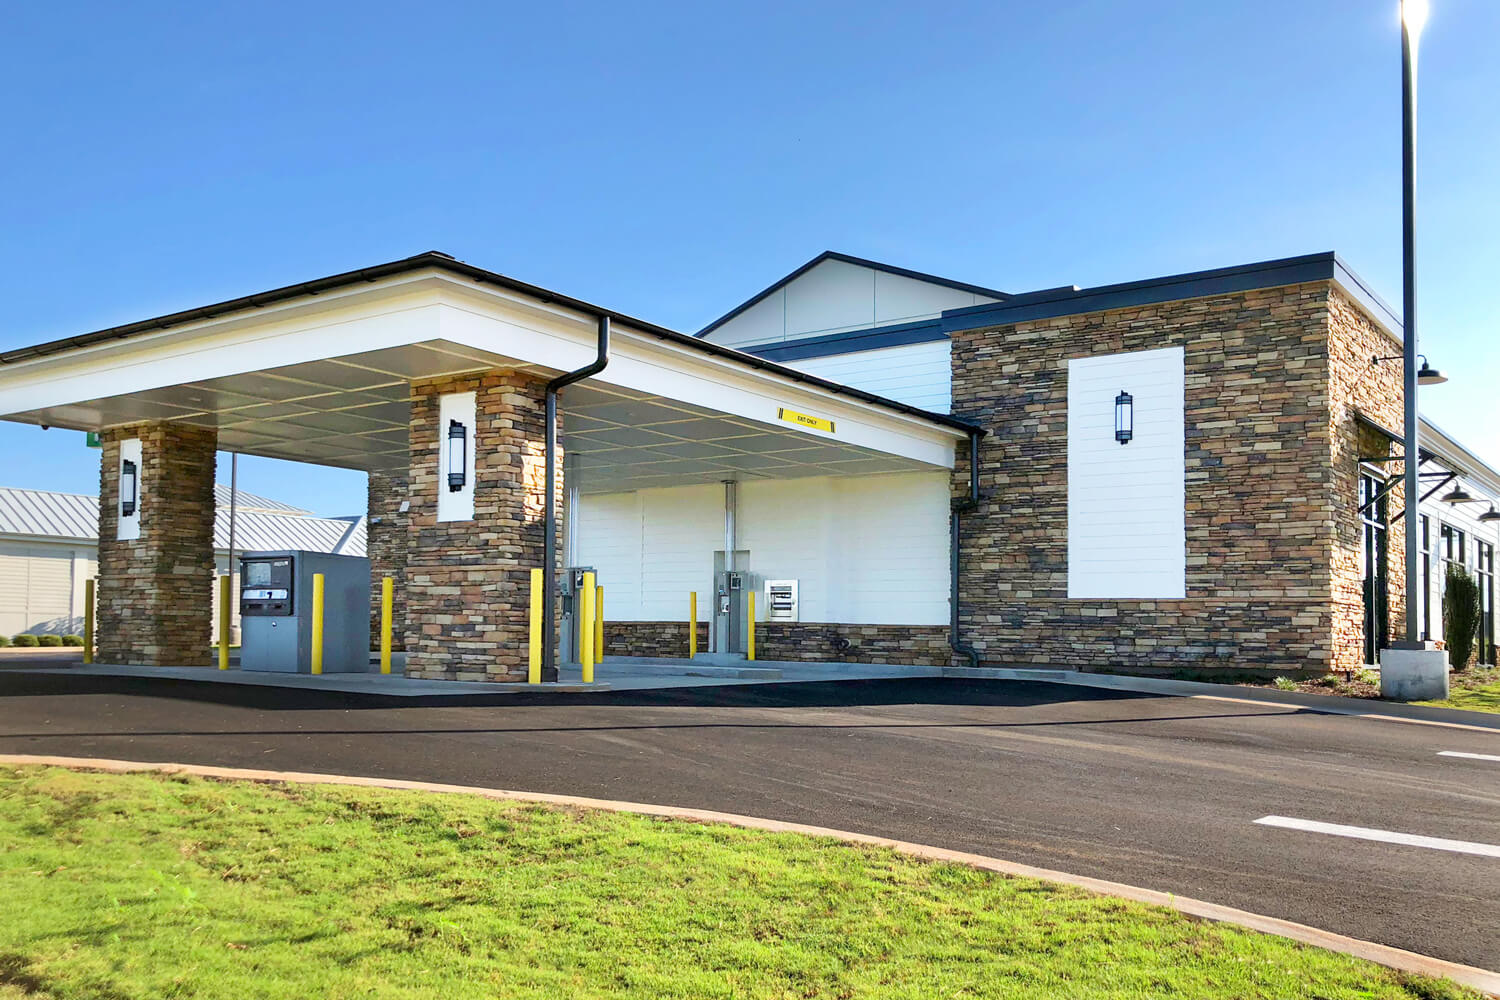 Guardian Credit Union - Drive Through - Designed by Foshee Architecture